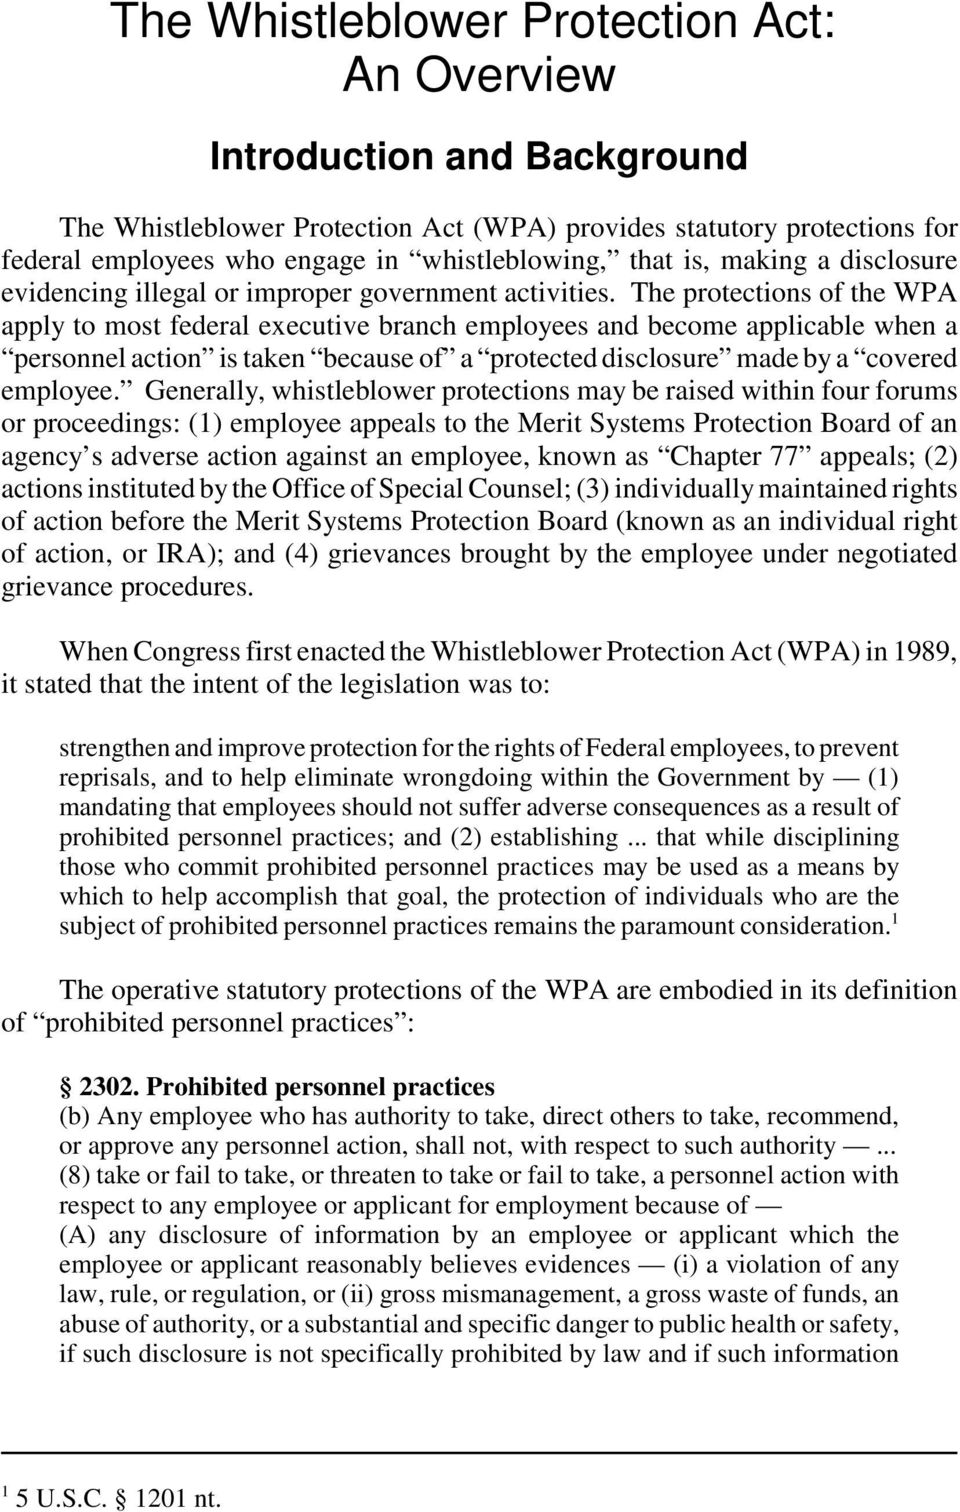 The protections of the WPA apply to most federal executive branch employees and become applicable when a personnel action is taken because of a protected disclosure made by a covered employee.